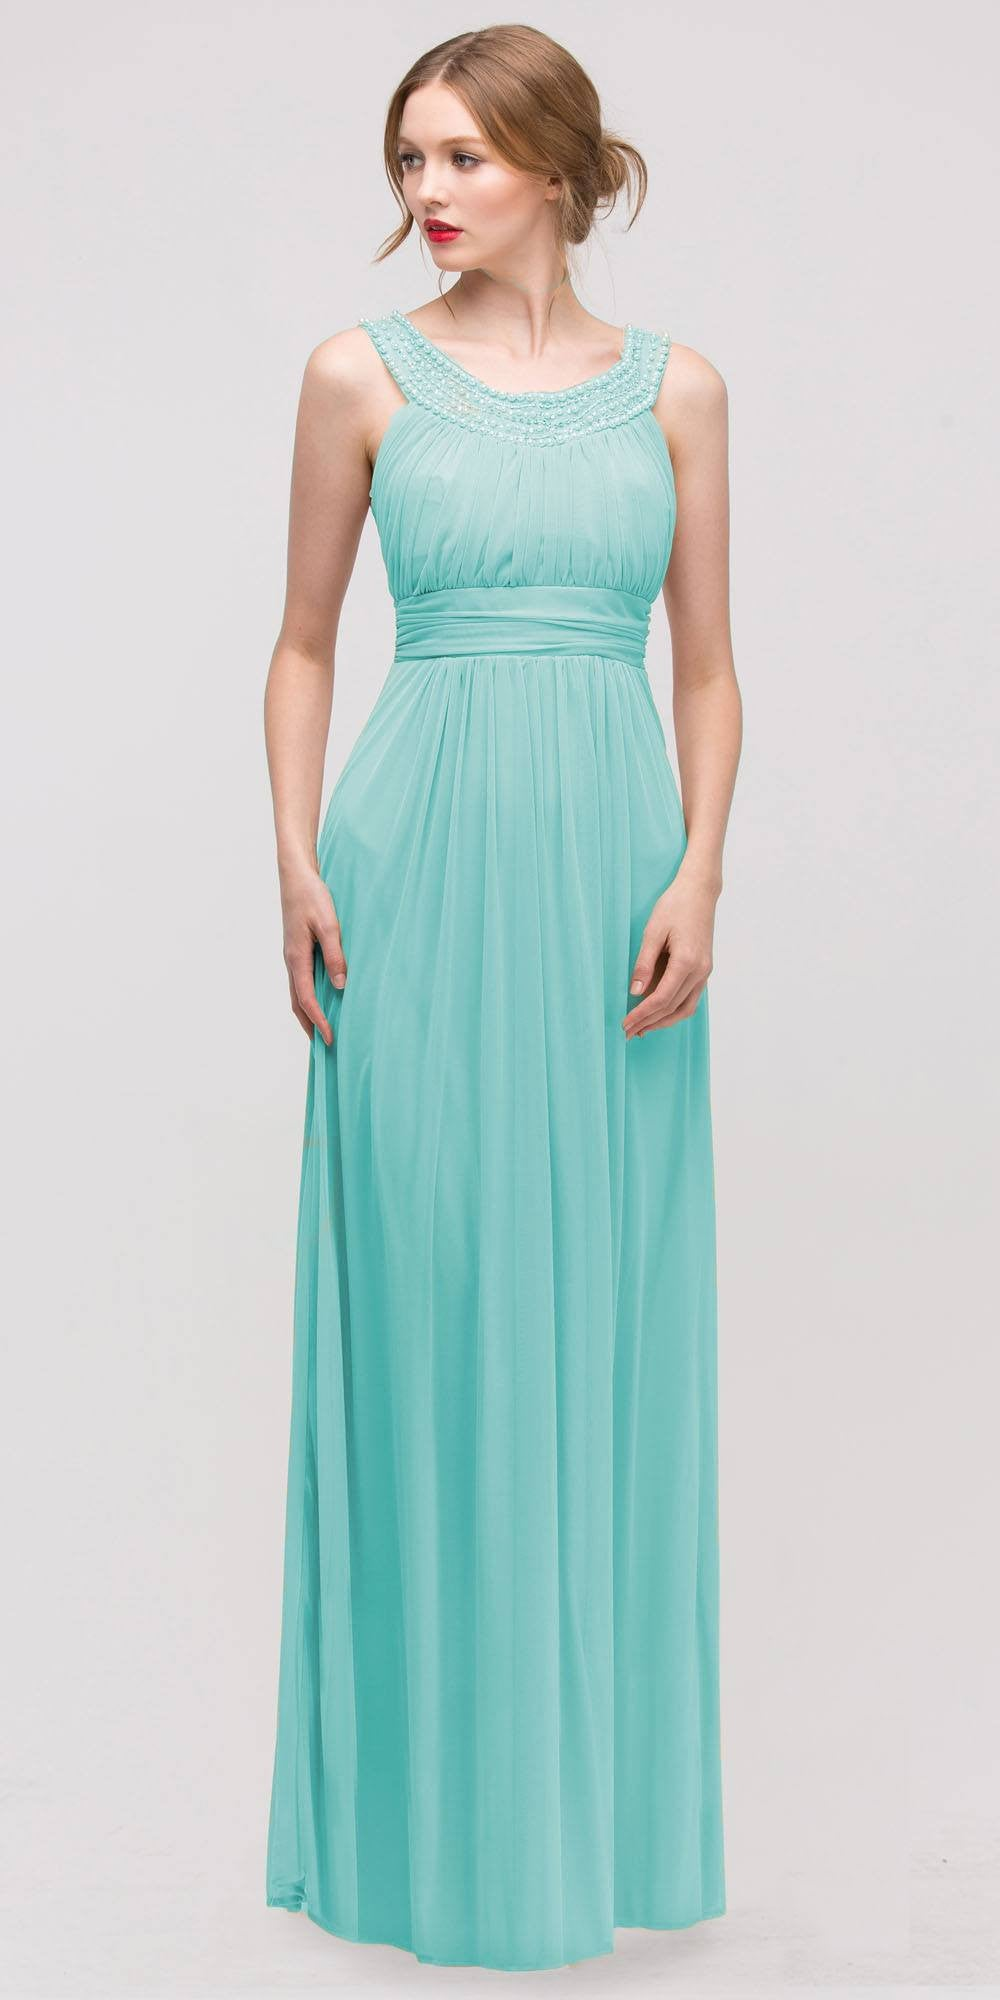 Studded Bateau Neckline Ruched Bodice Mint Evening Dress